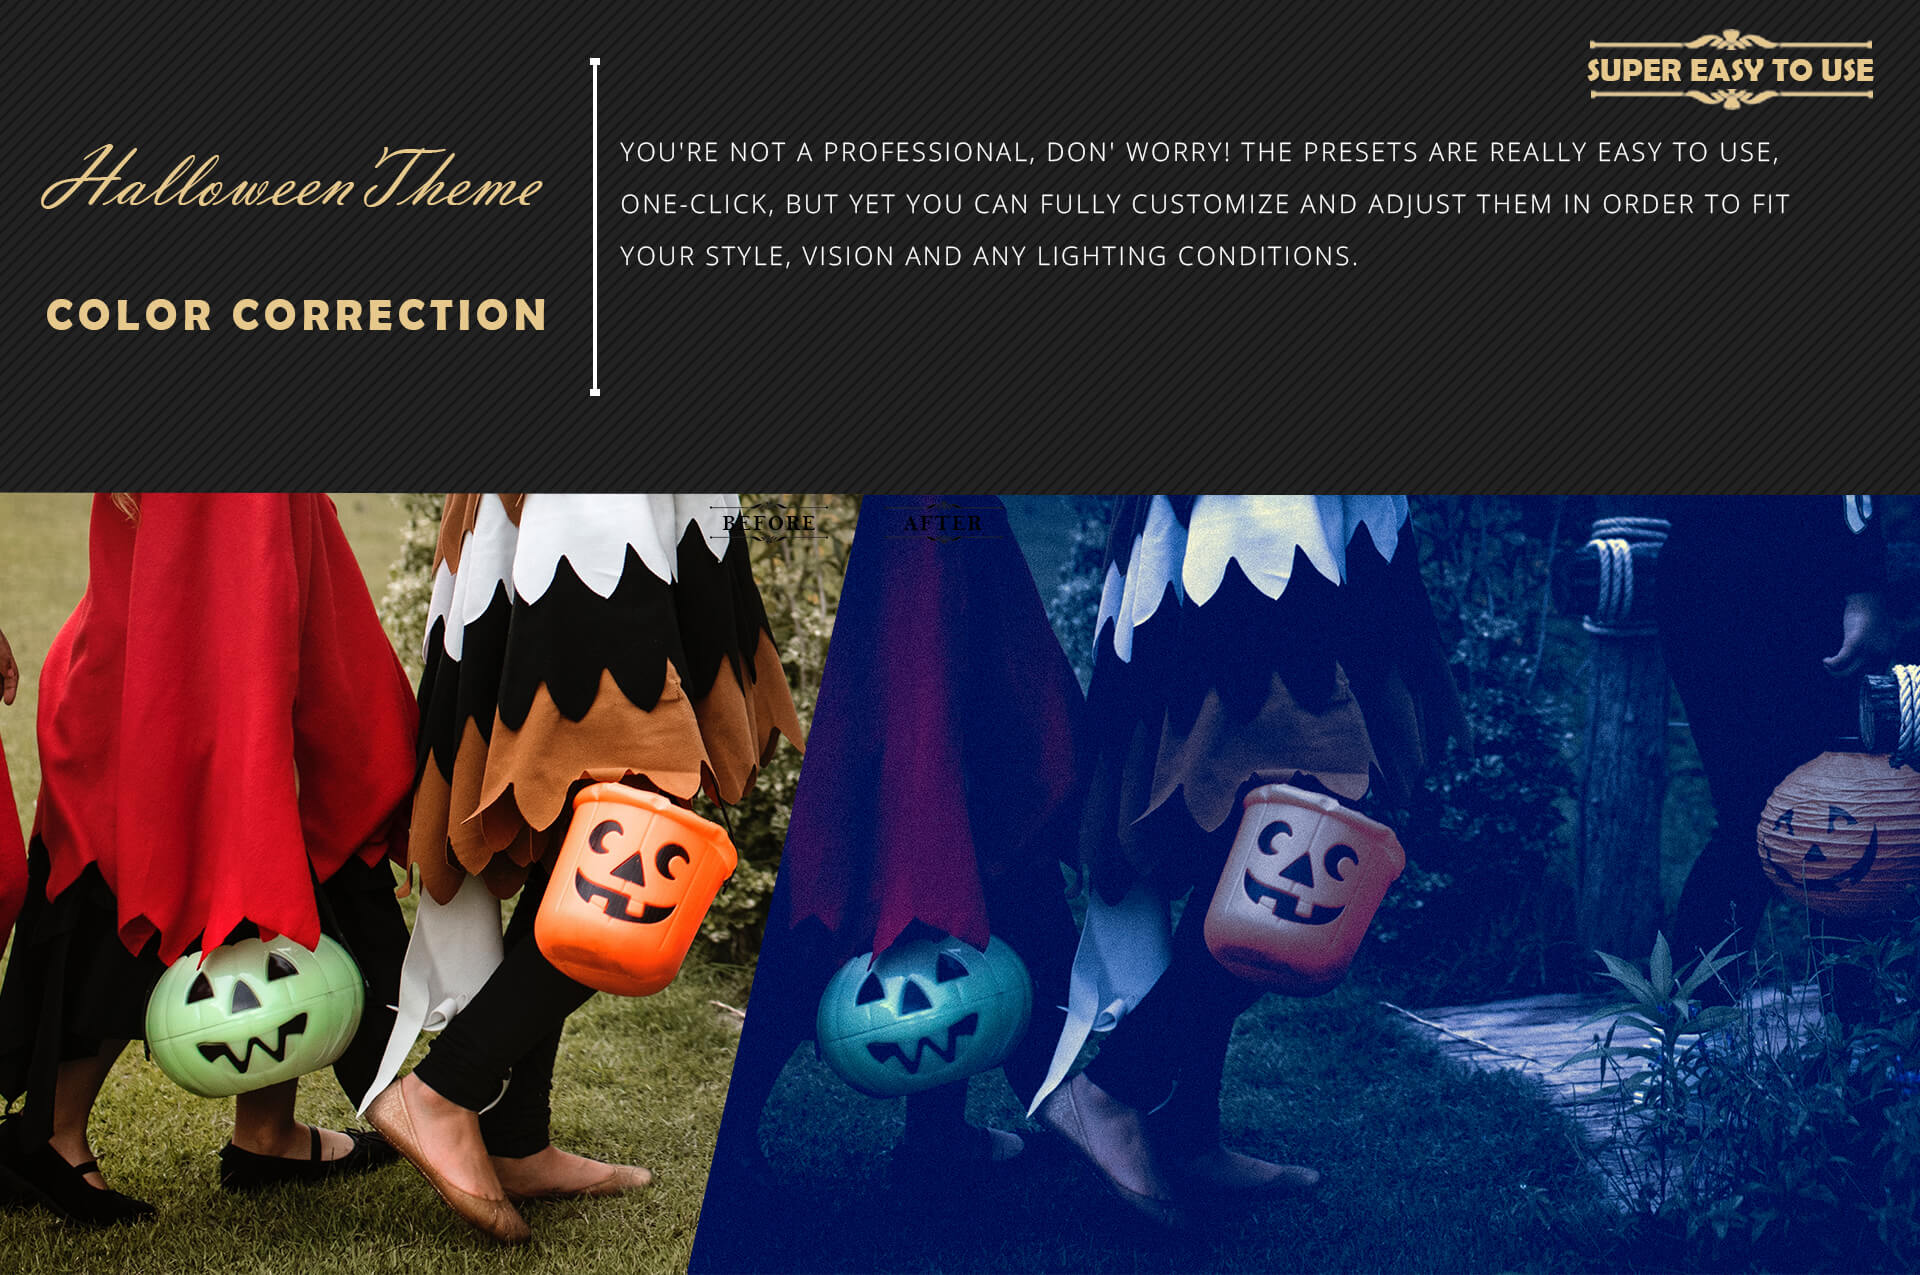 Halloween Theme Collection Color Grading Lightroom presets example image 5